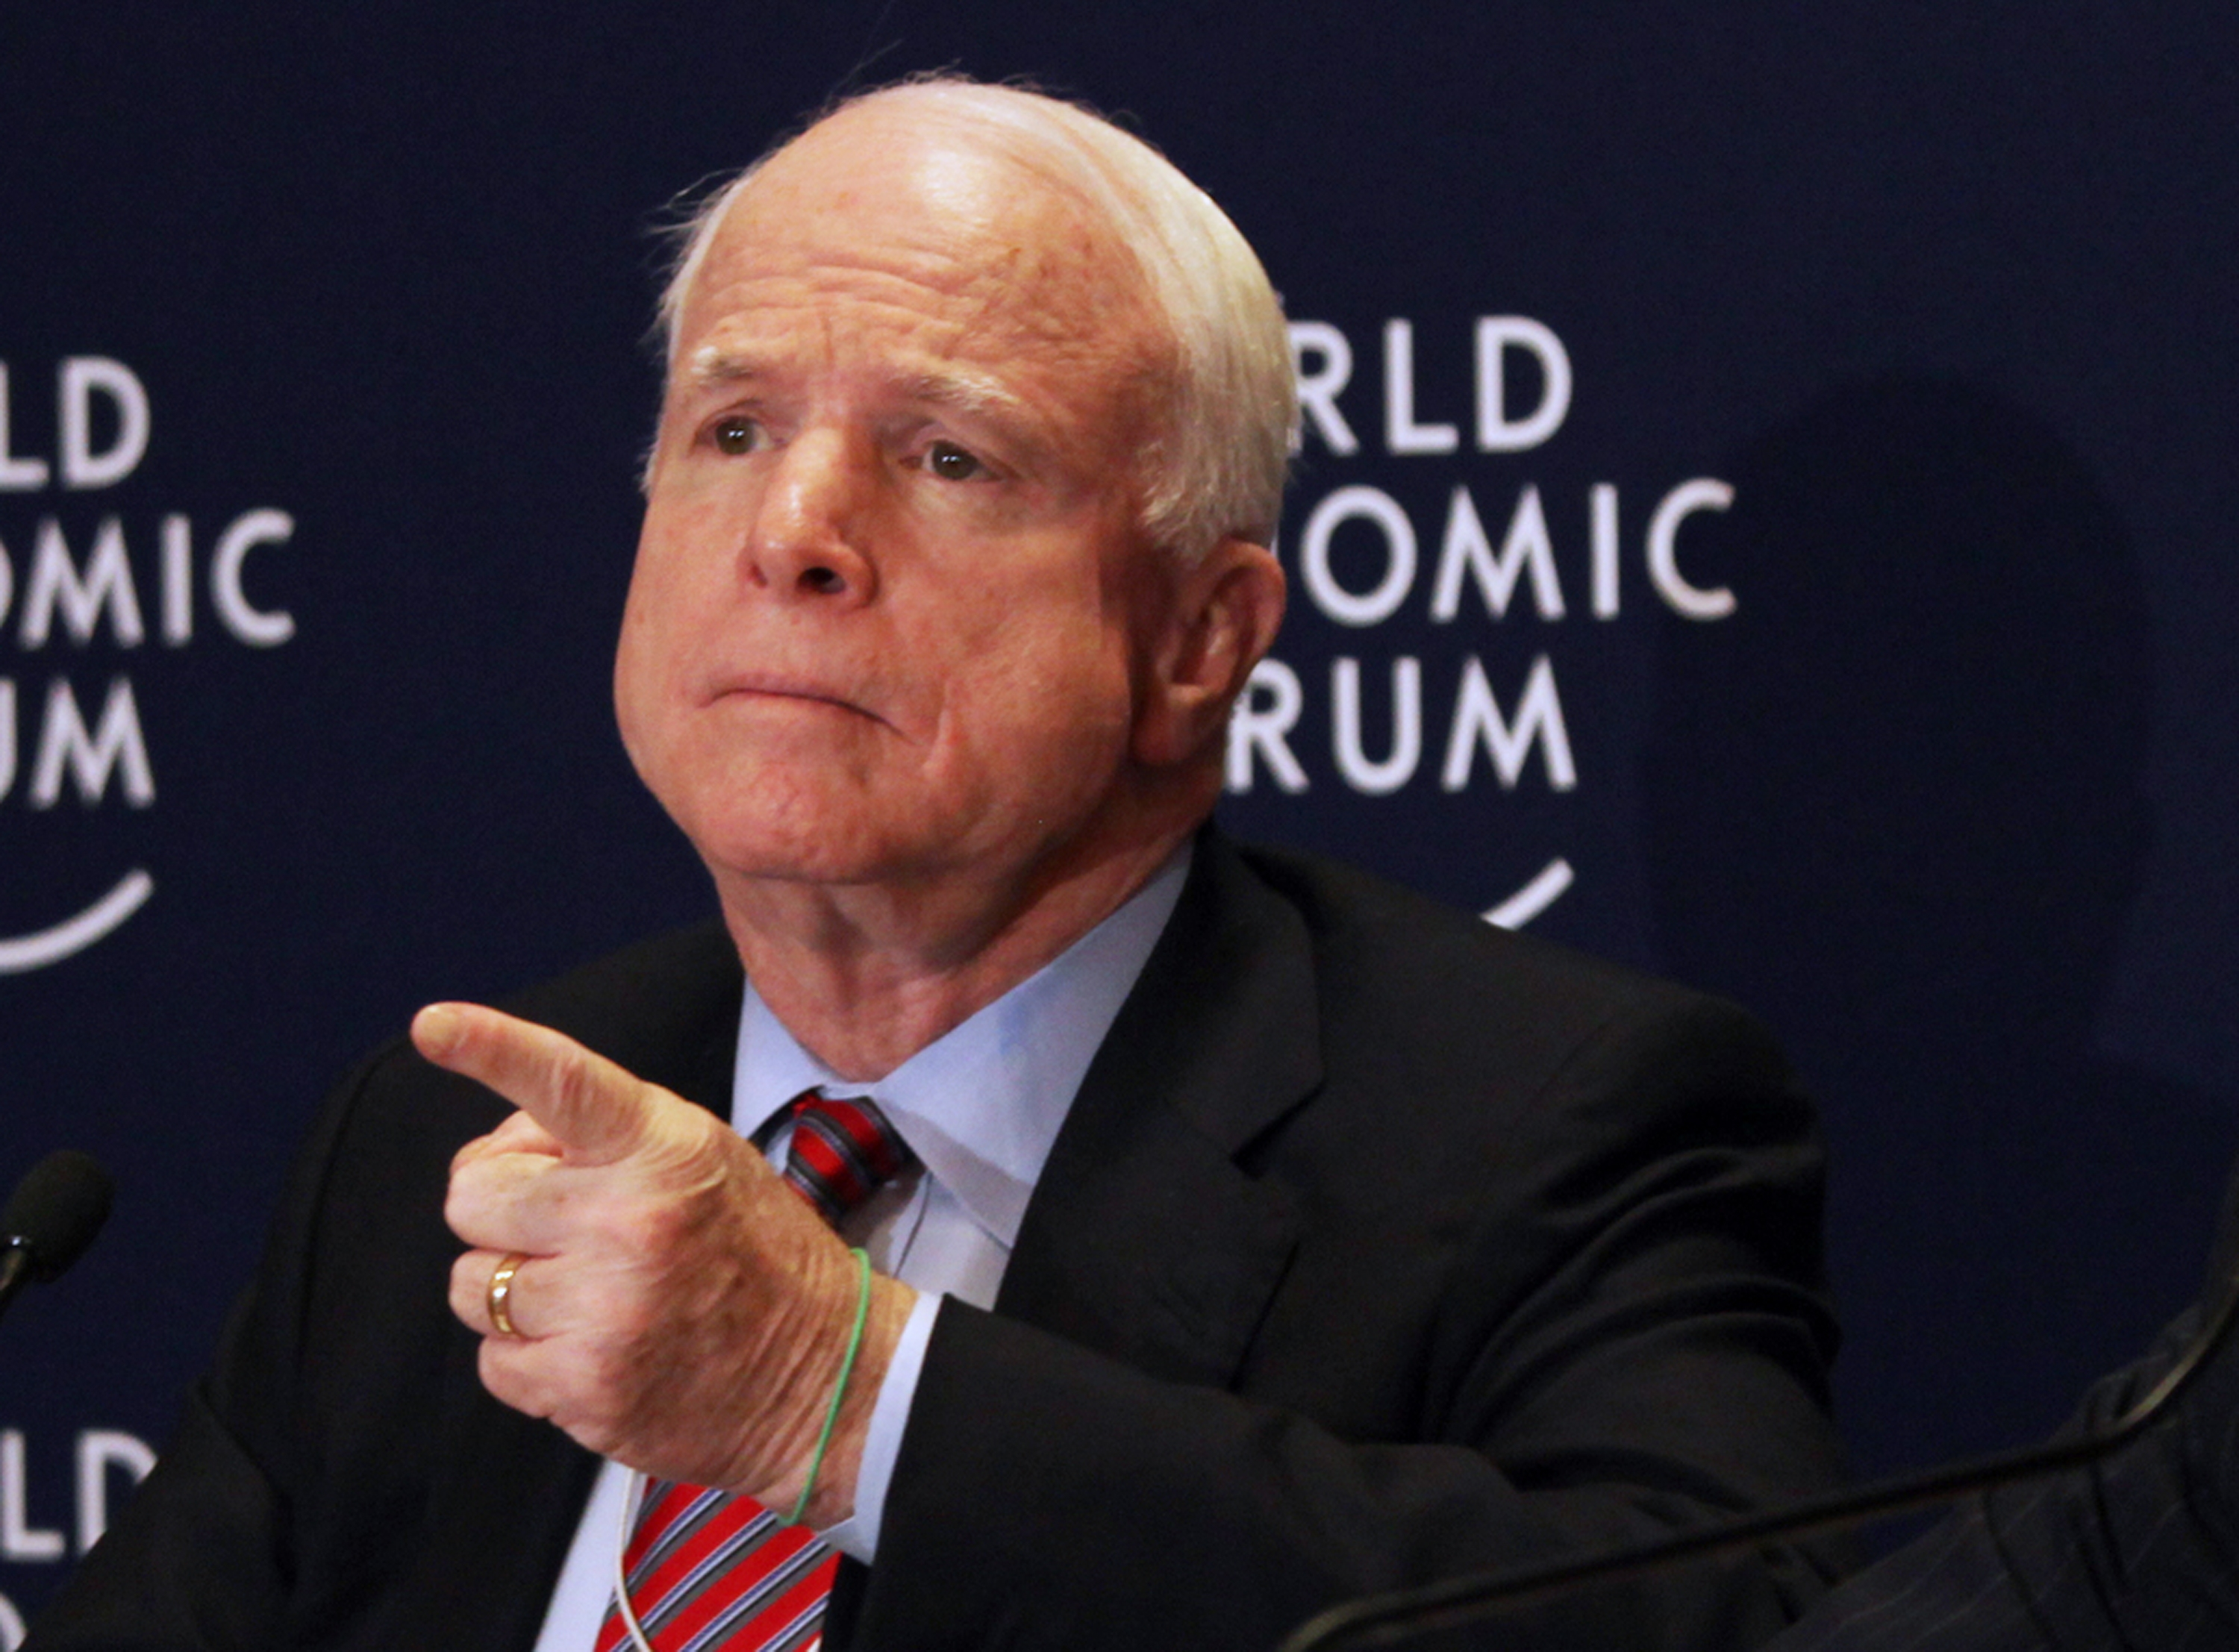 McCain hits U.S. policy on Syria, says Assad won't end war - Washington Times